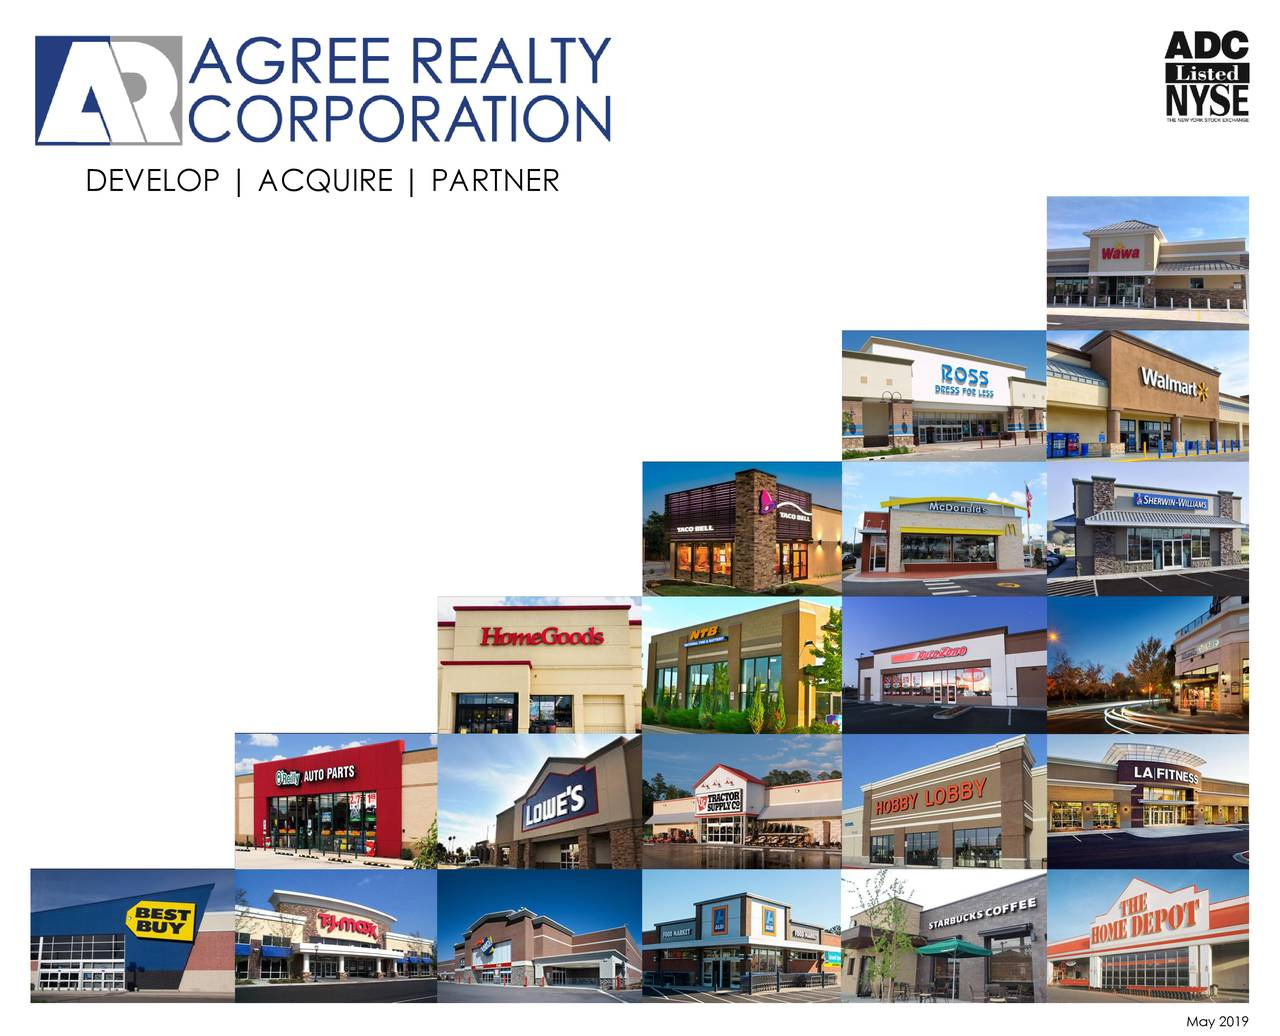 Agree Realty (ADC) Investor Presentation - Slideshow